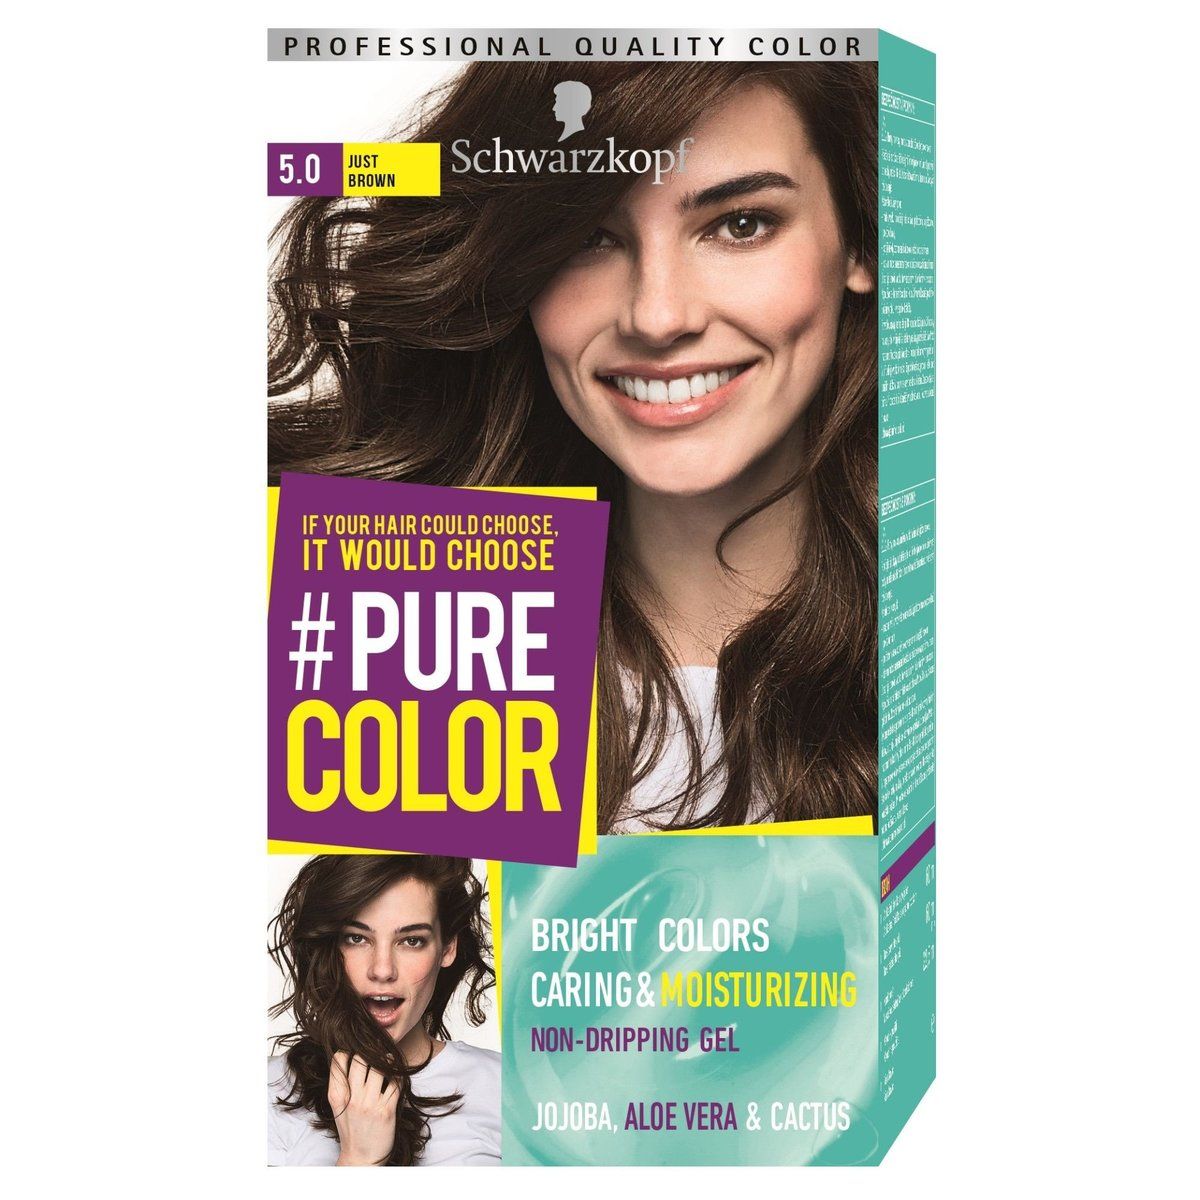 Professional Quality Color Caring & Moisturizing Hair Color 5.0 Just Brown [Parallel Import Product]